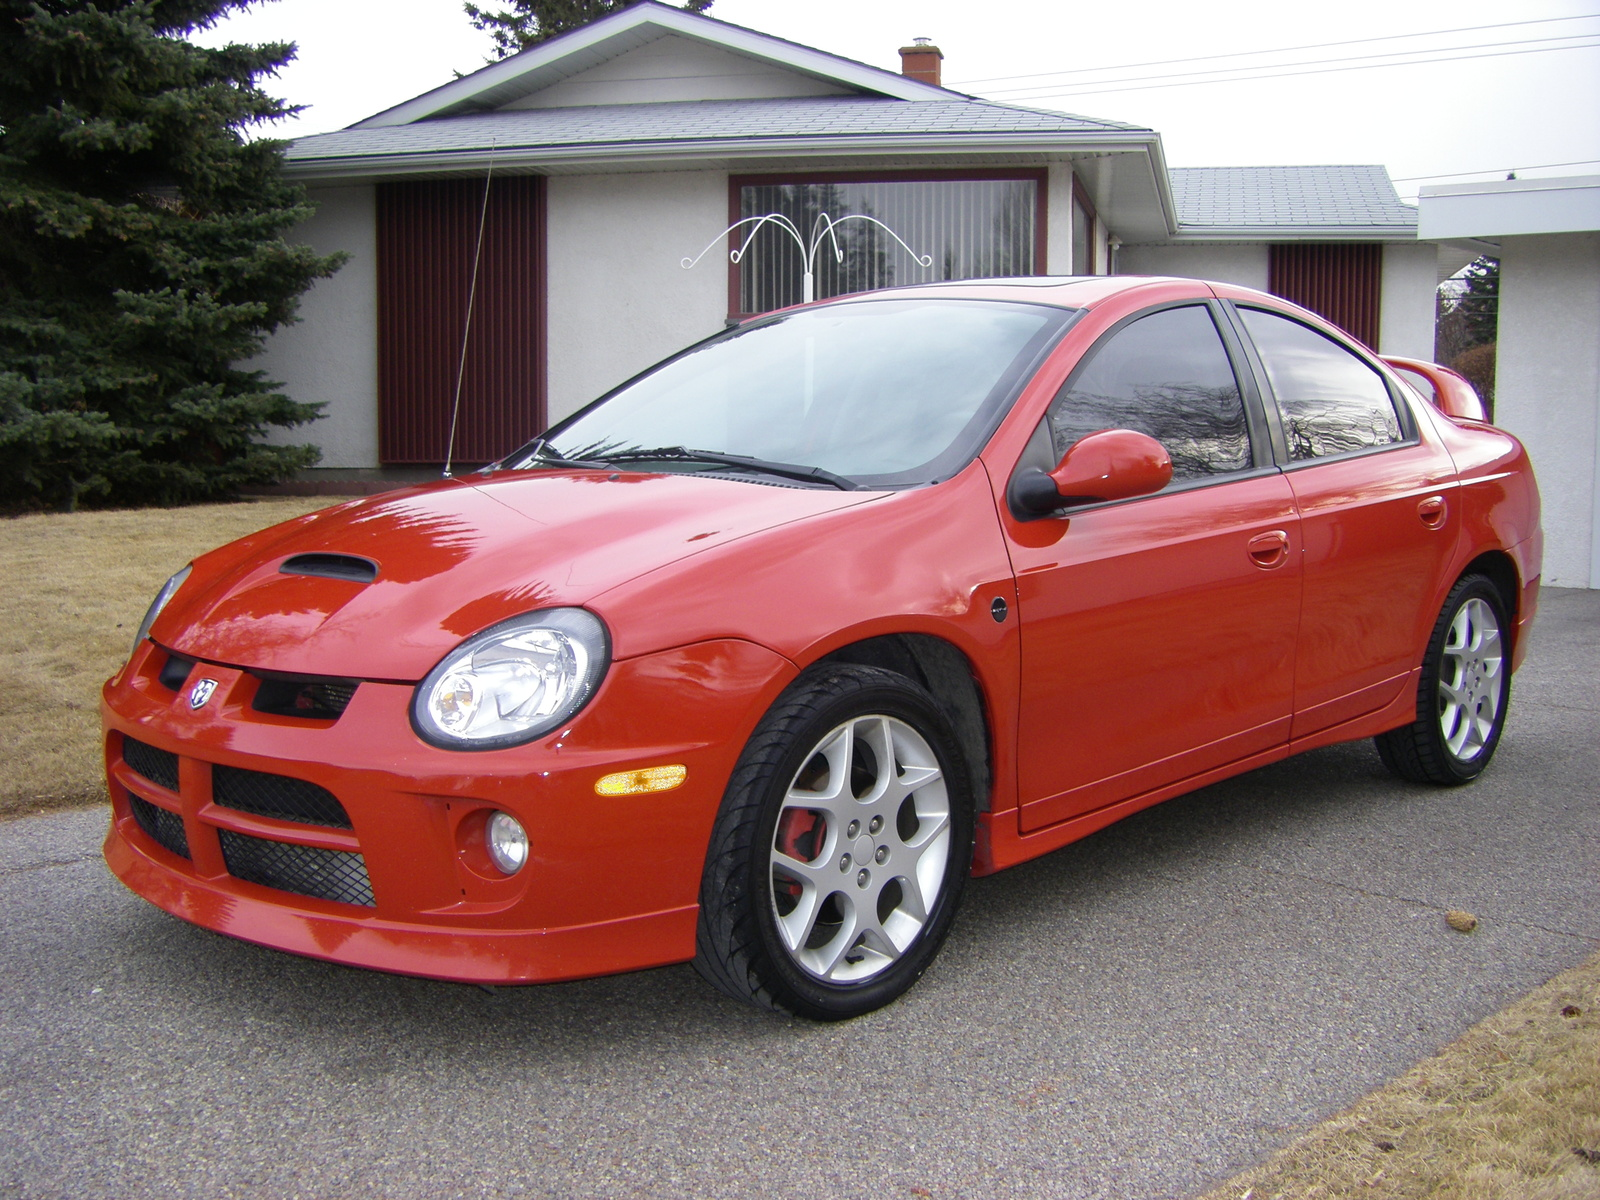 2004 Dodge Neon SRT-4 4 Dr Turbo Sedan picture